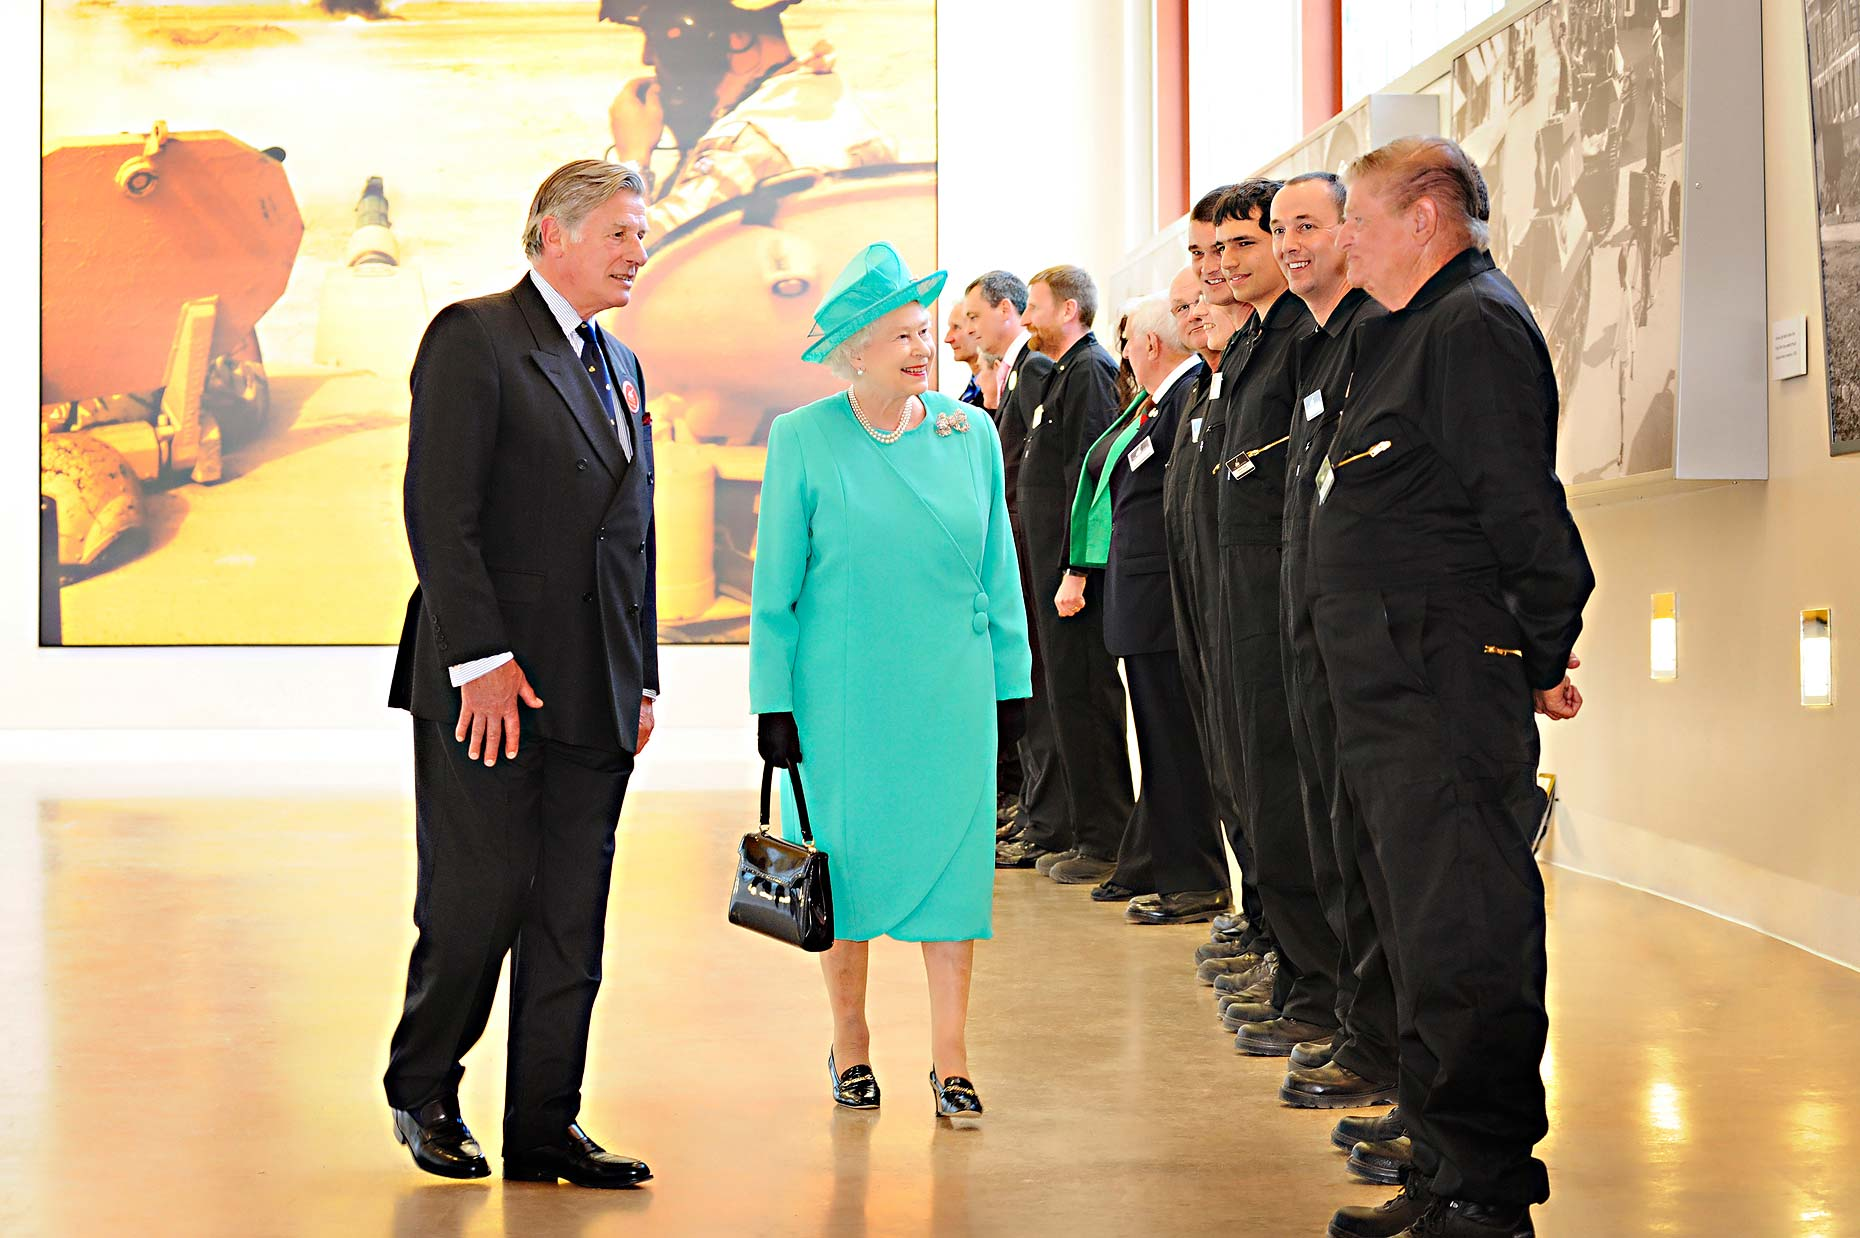 0954 The-Queen-at-Bovington-Tank-Museum-PR-and-Corporate.jpg